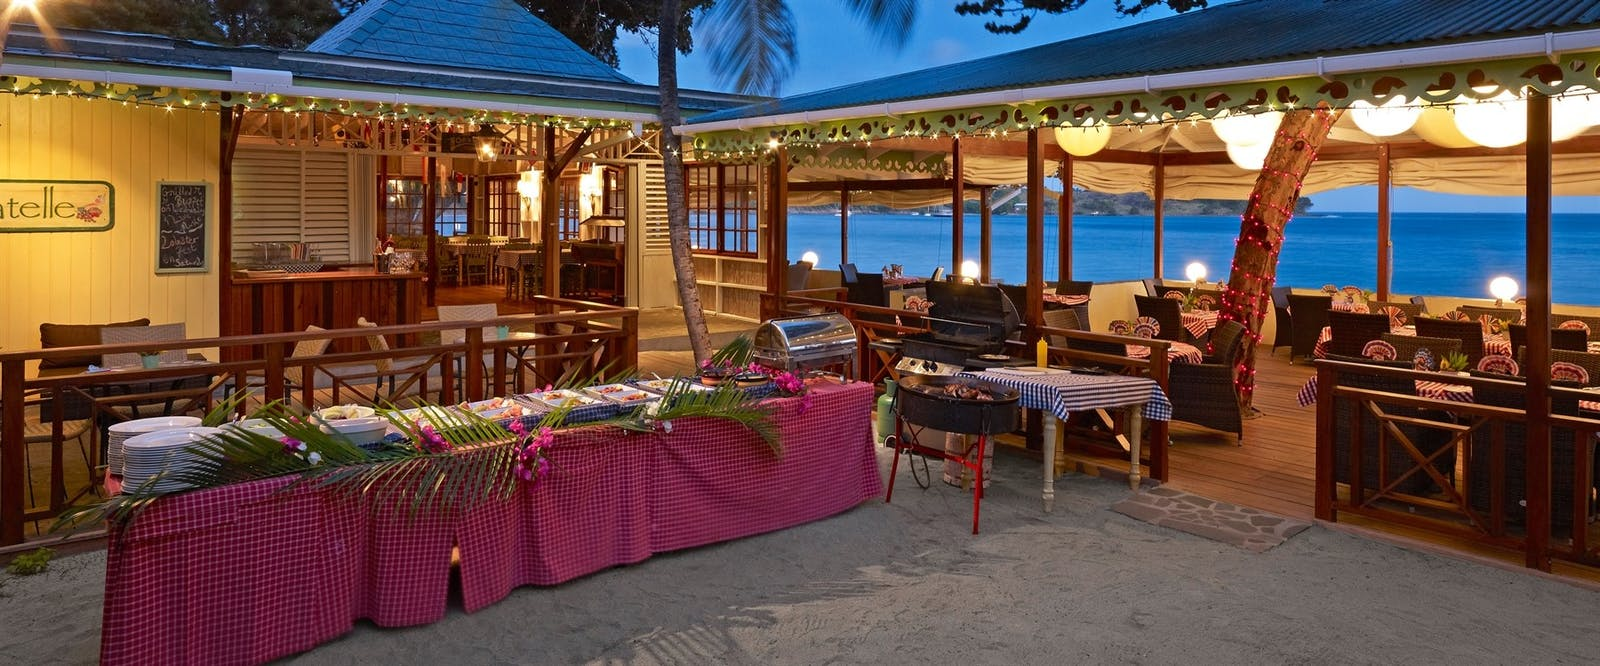 Beach Dining at Bequia Beach Hotel, St Vincent and The Grenadines